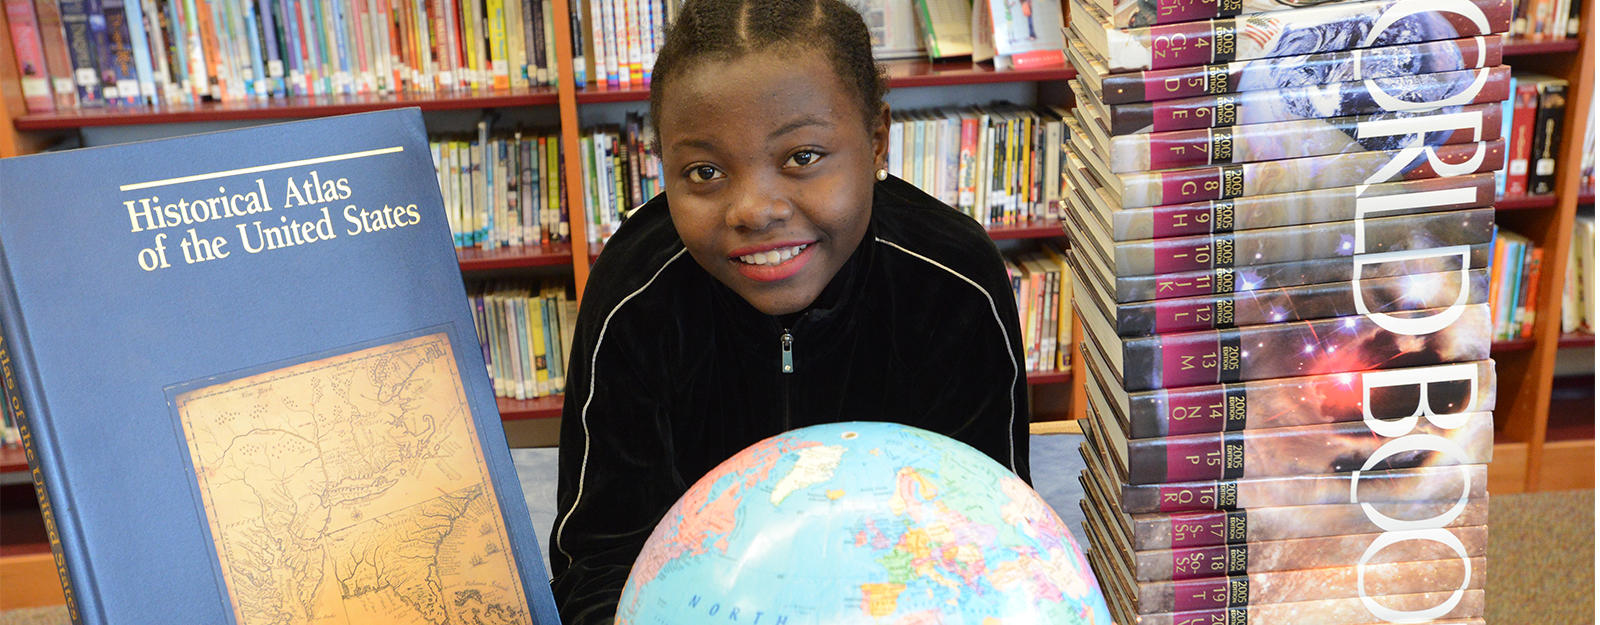 Student smiling behind a globe and stack of history textbooks.